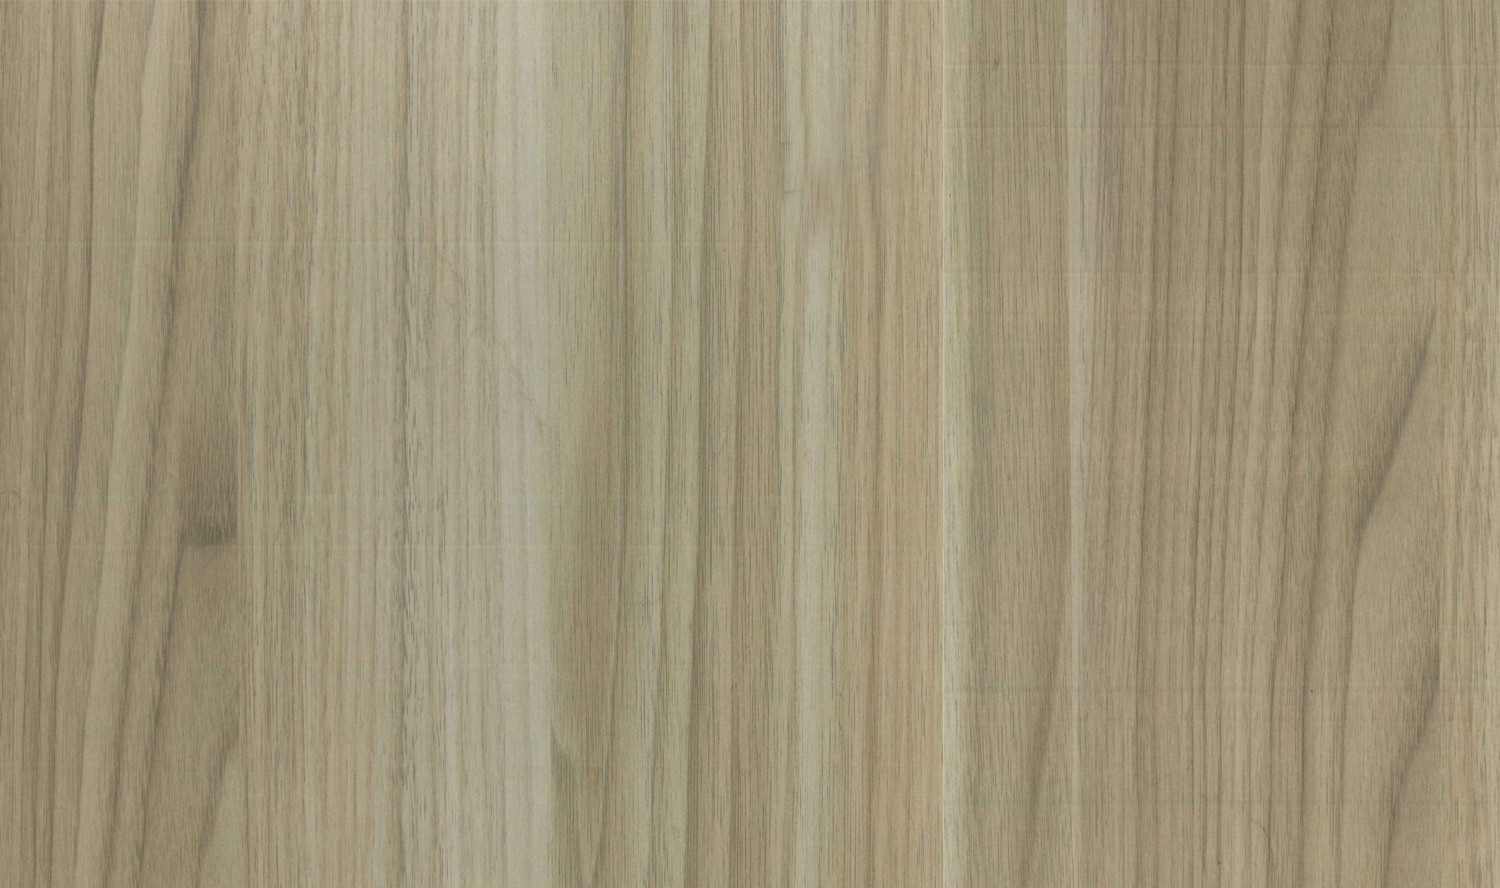 Sonata Range Of Walnut Laminate - Sundek International